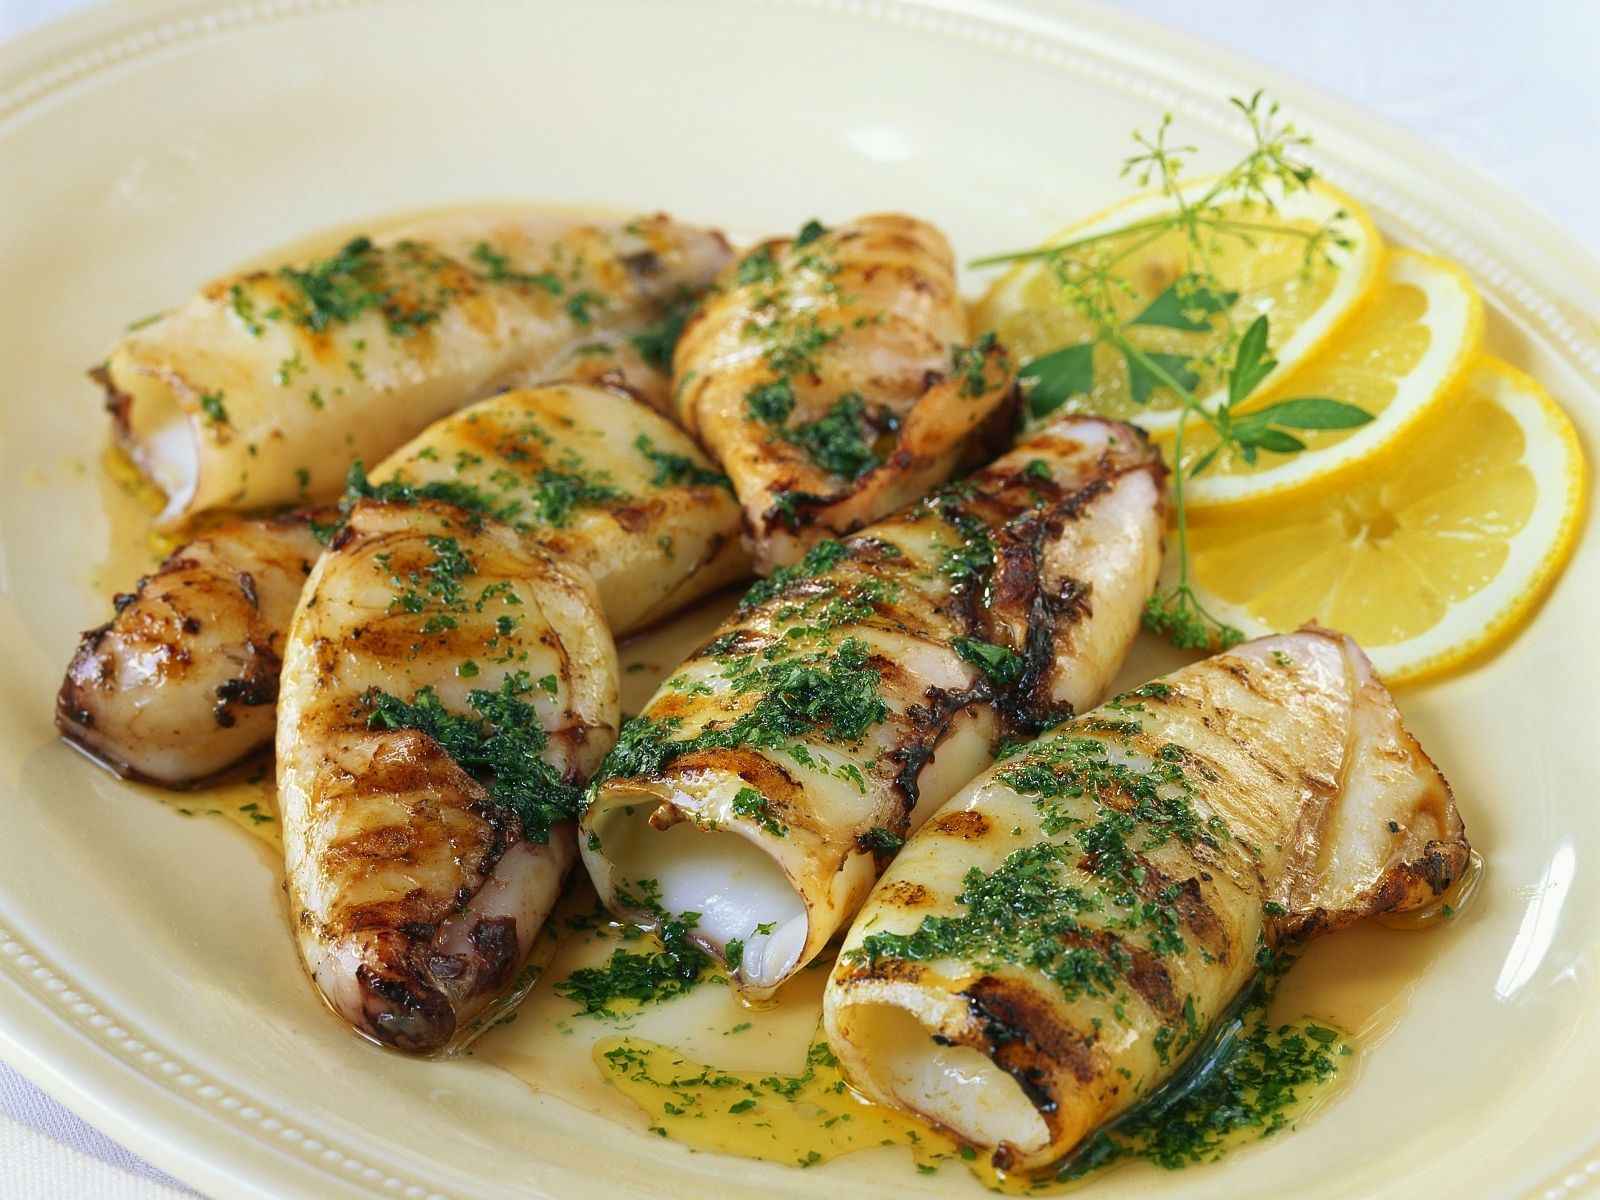 Photo of Grilled calamari with parsley